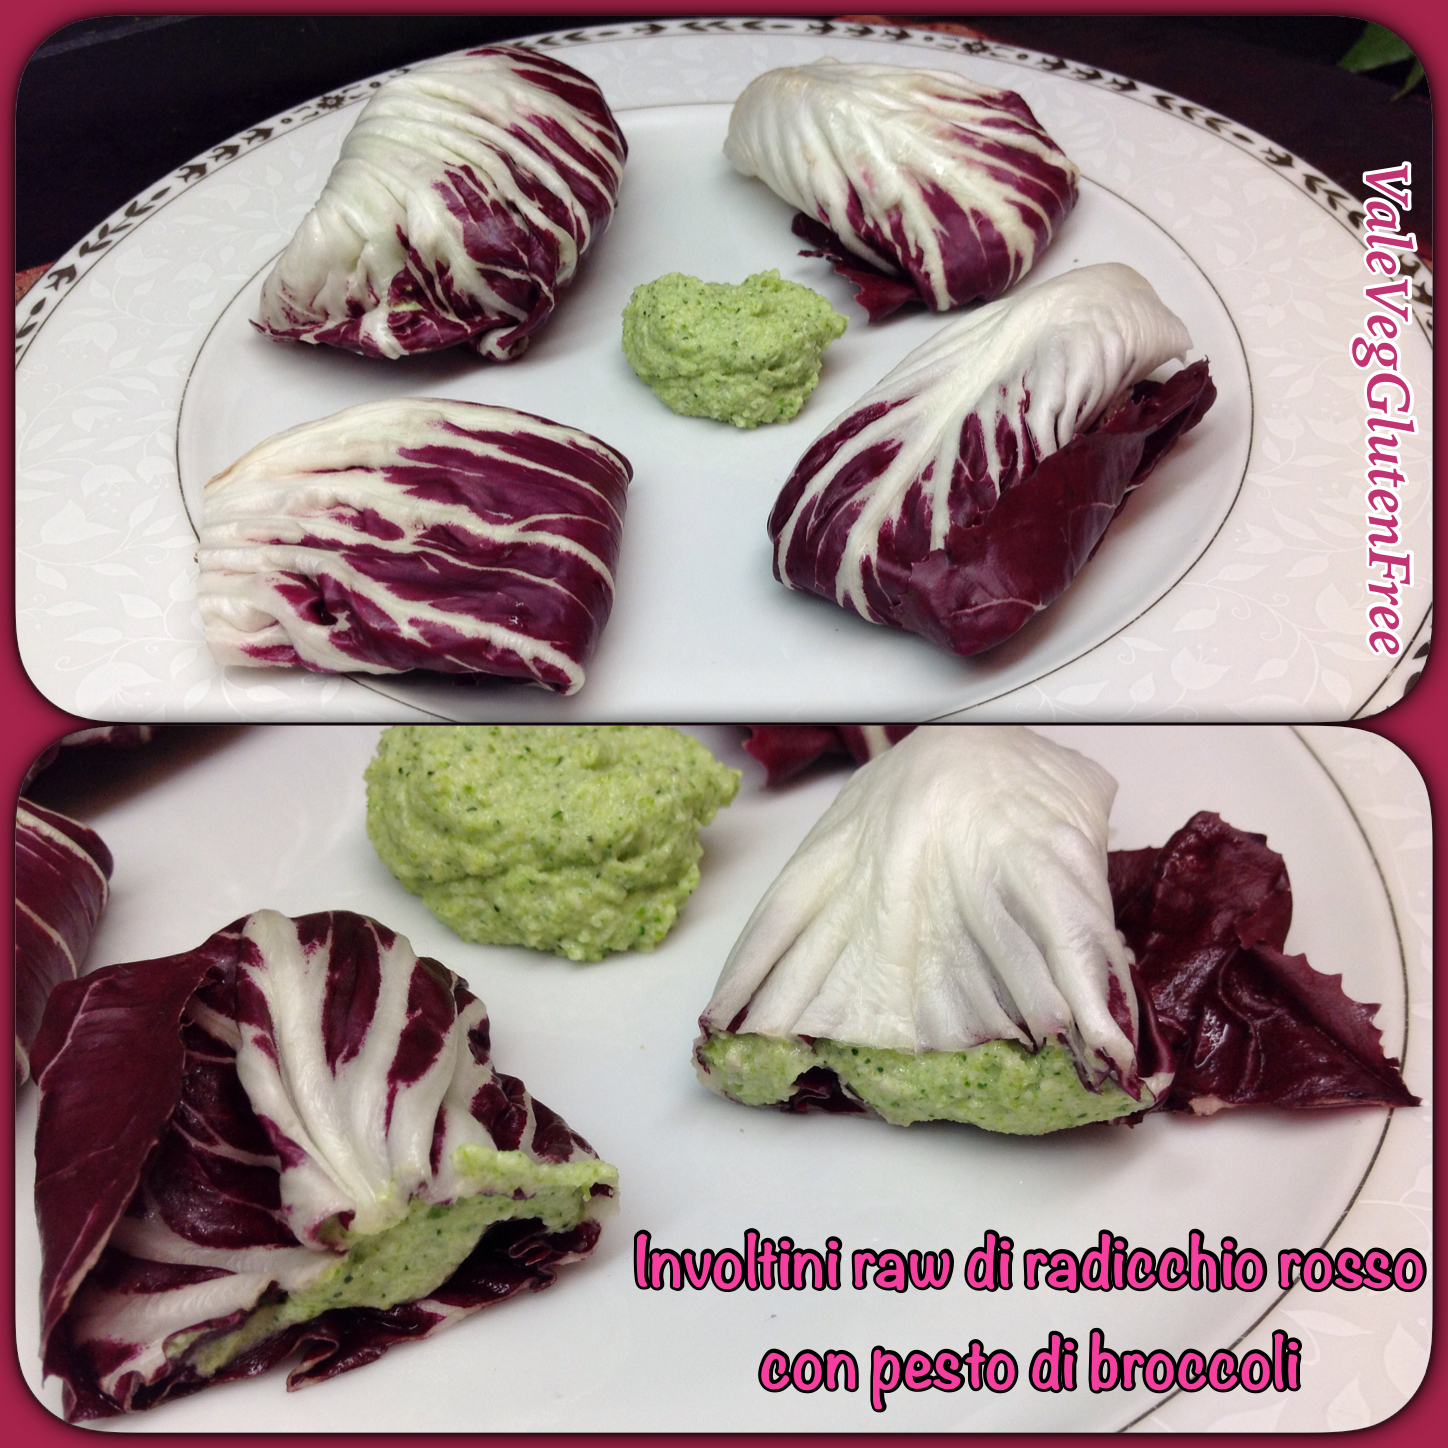 Raw radicchio rosso rolls with raw broccoli pesto / Involtini crudisti di radicchio rosso con pesto crudista di broccoli